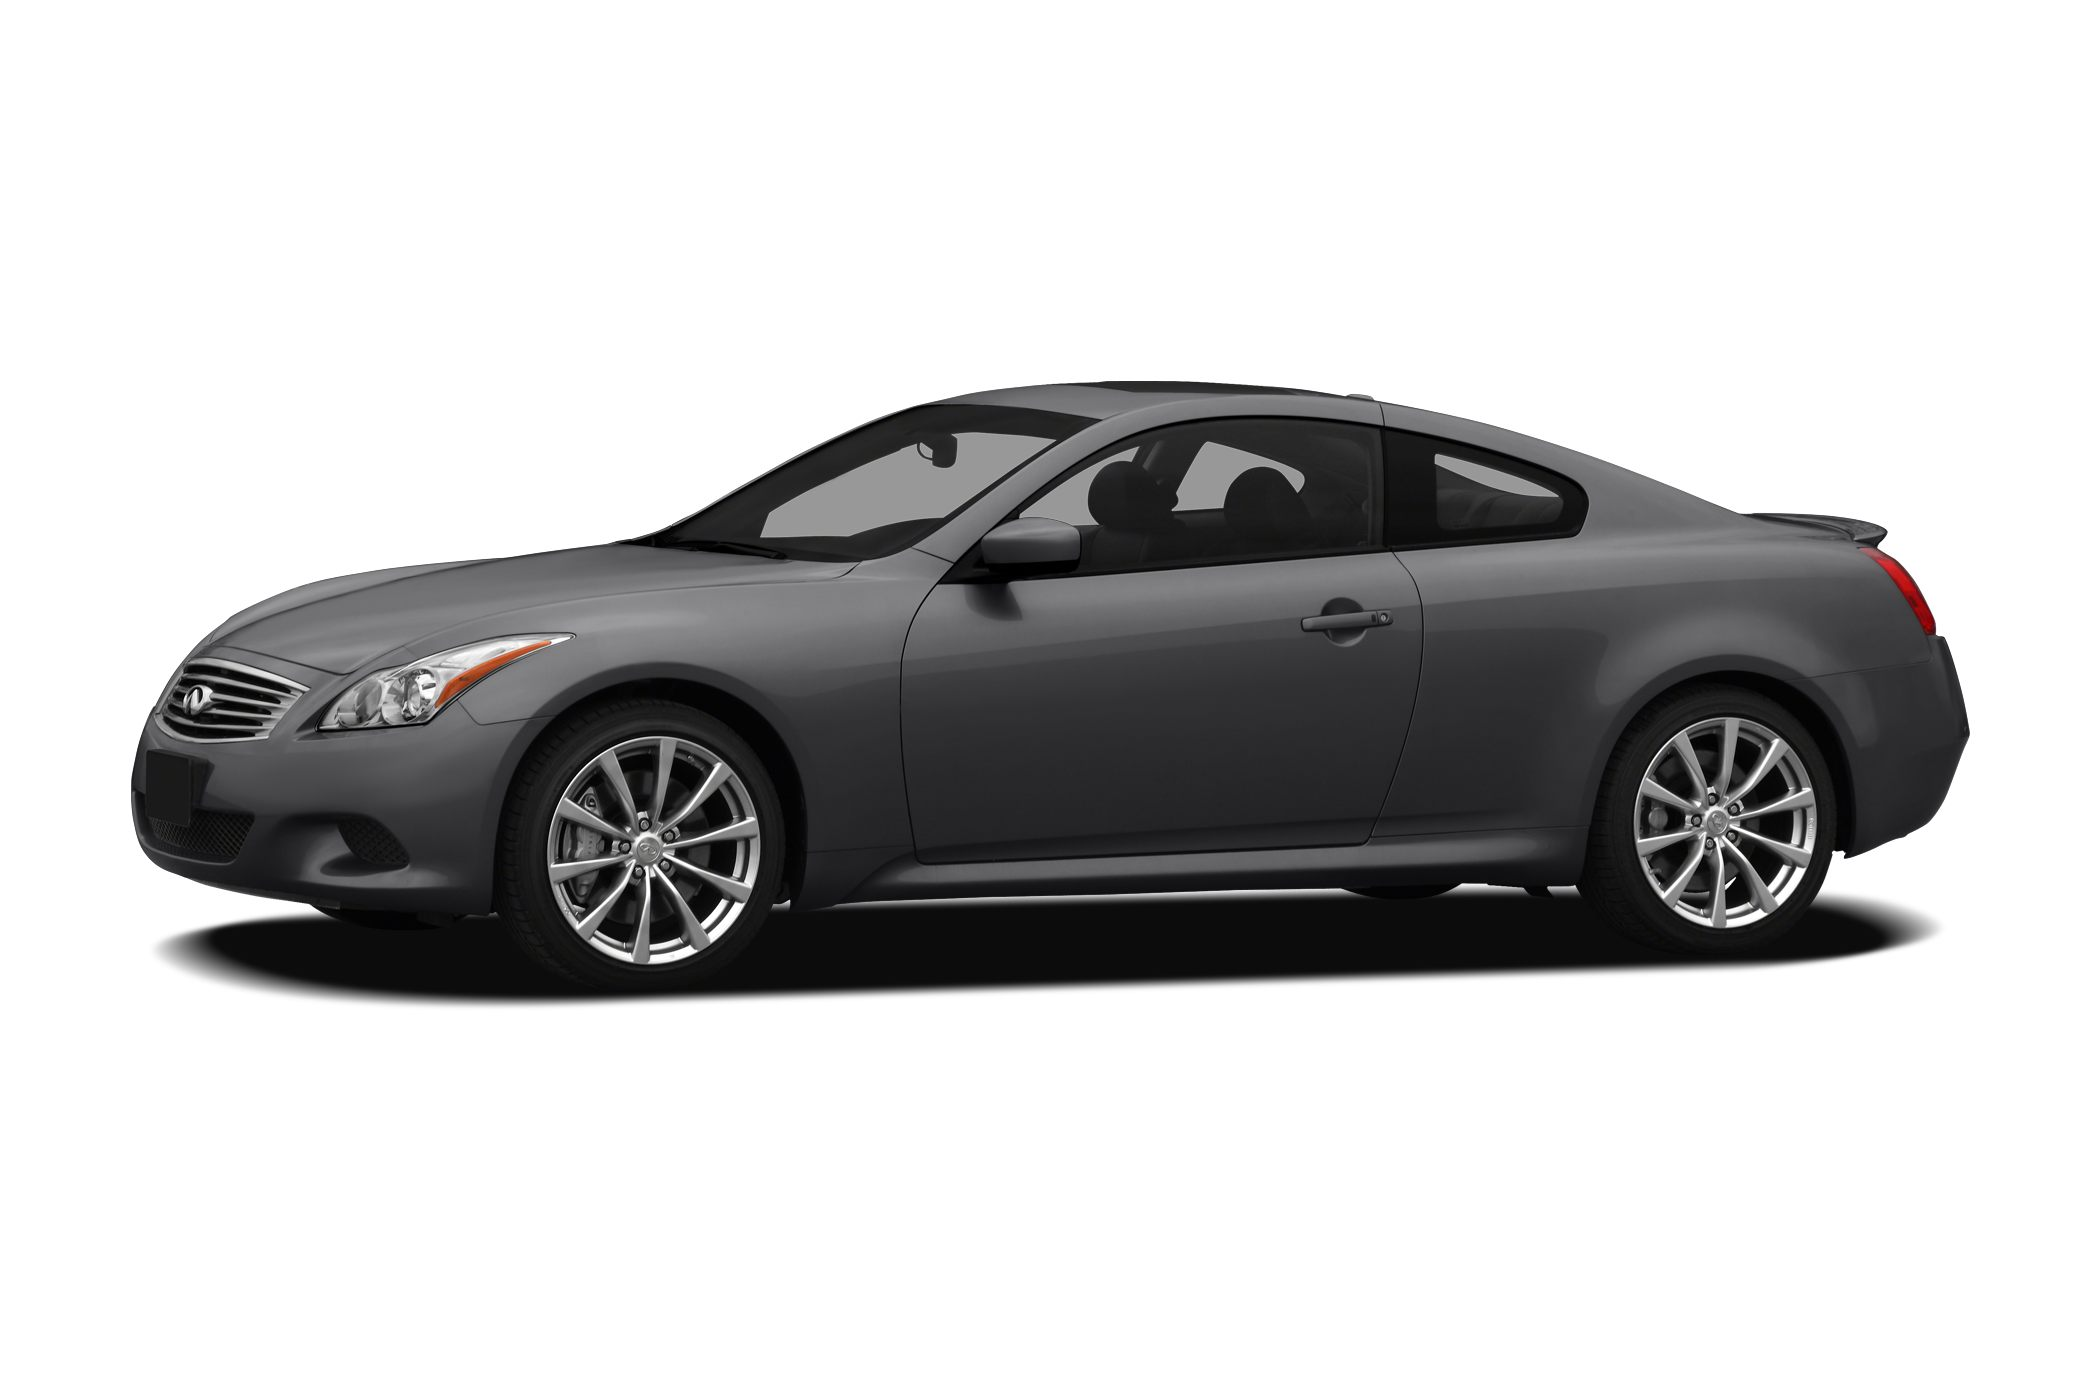 2009 Infiniti G37 Sedan for sale in Fort Worth for $12,995 with 137,449 miles.